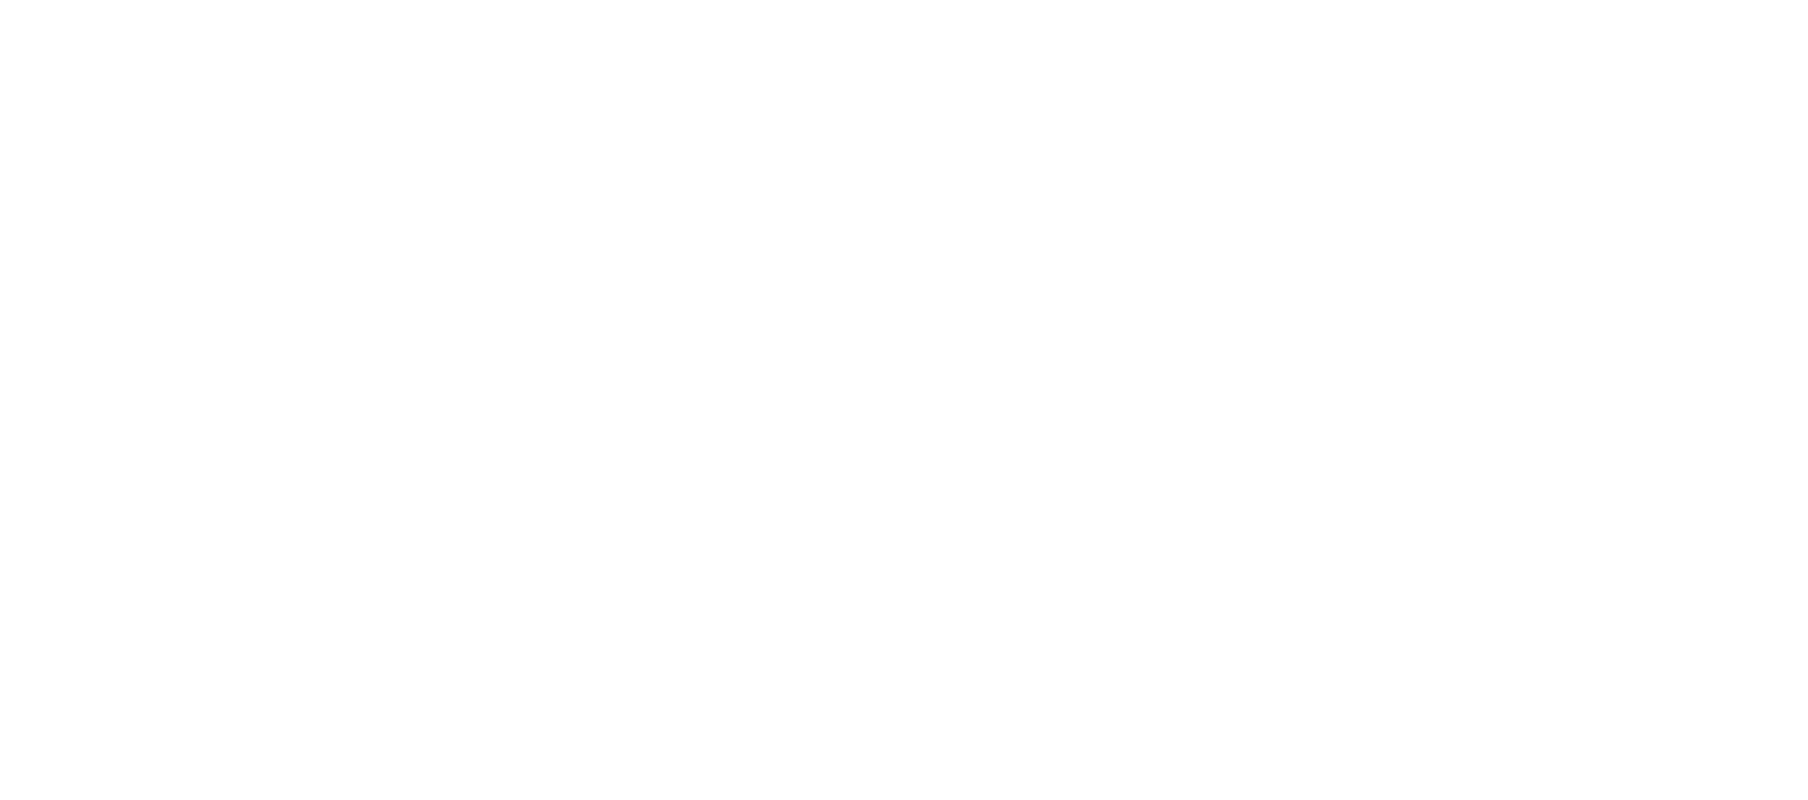 Gold Coast Business Excellence 2015 Awards